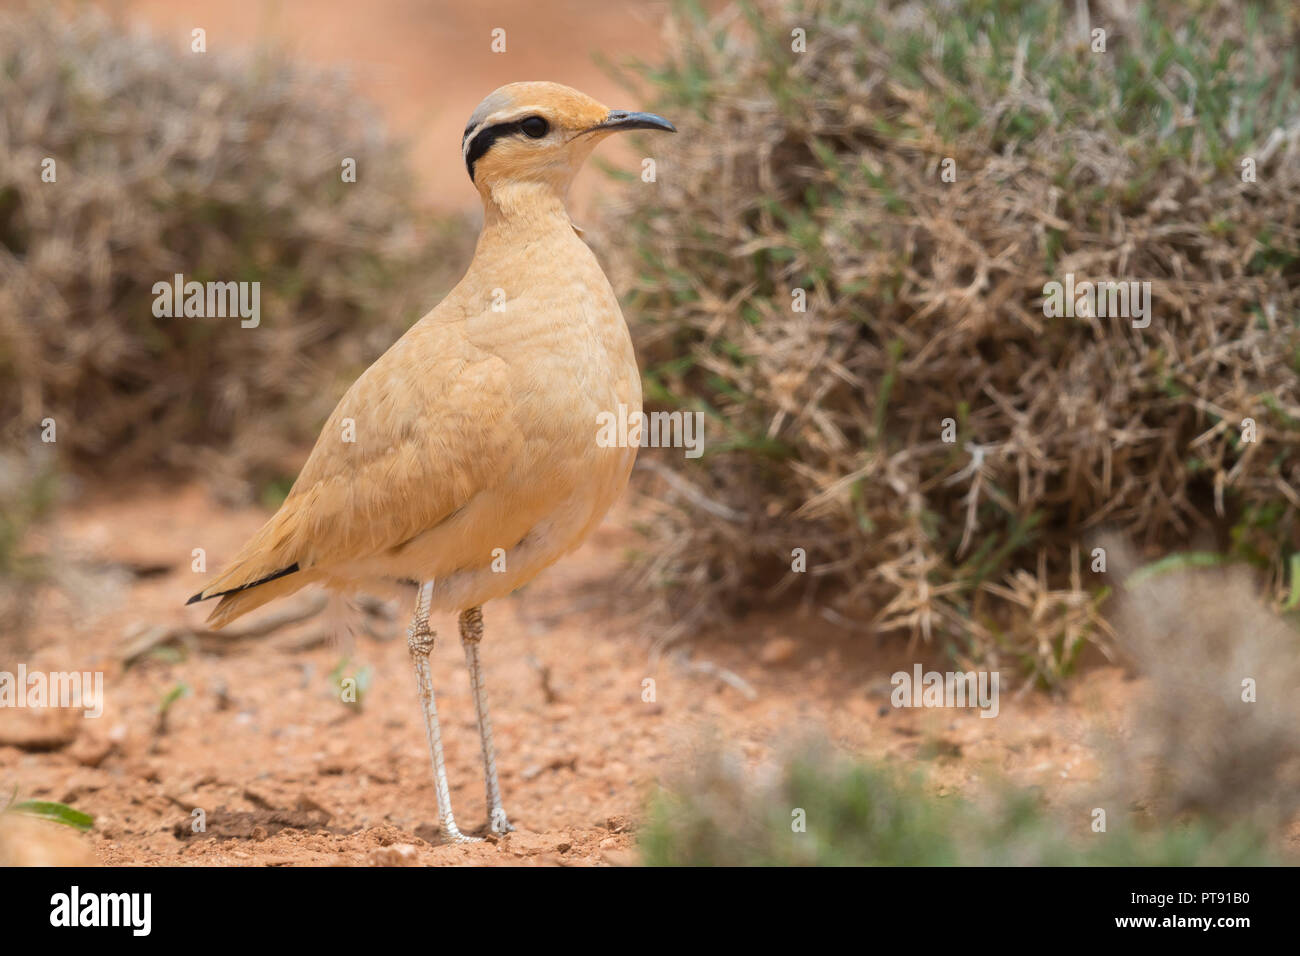 Cream-colored Courser (Cursorius cursor), side view of an adult standing on the ground in its typical habitat in Morocco - Stock Image